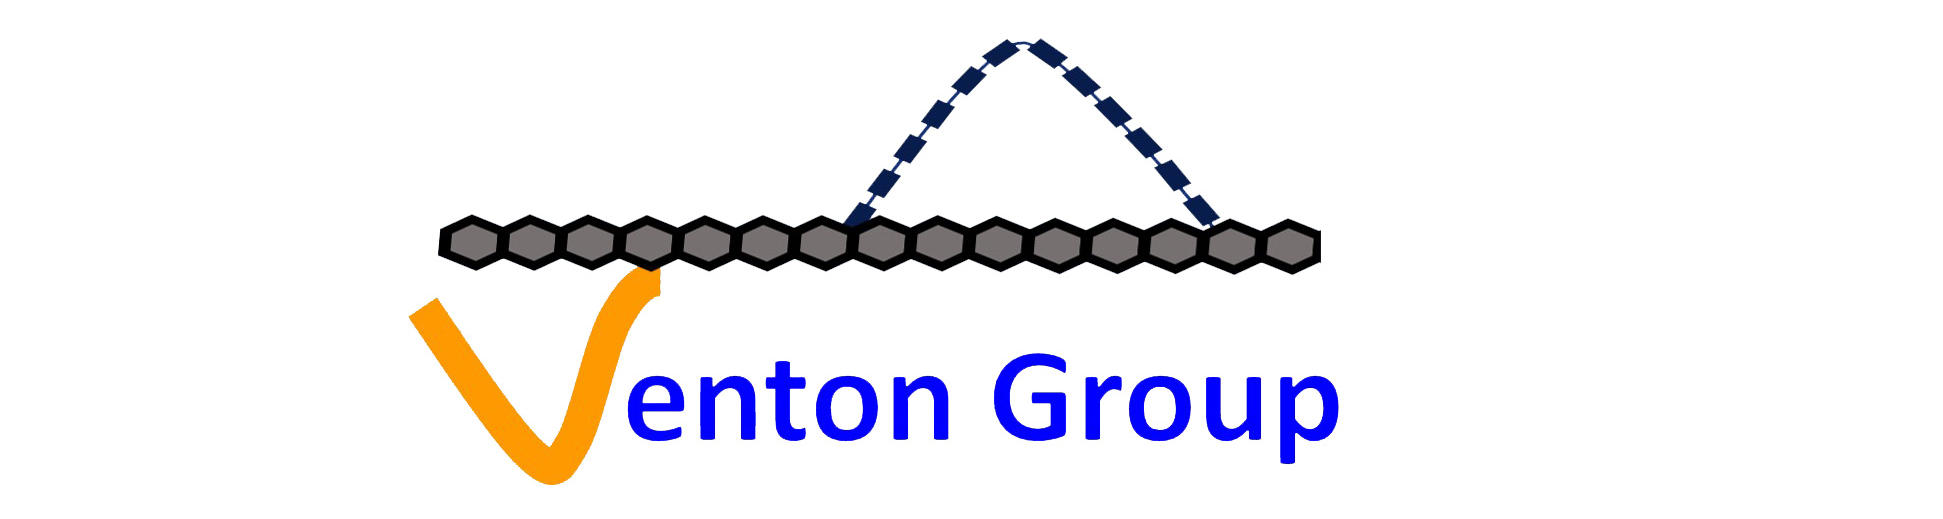 Venton Group at University of Virginia